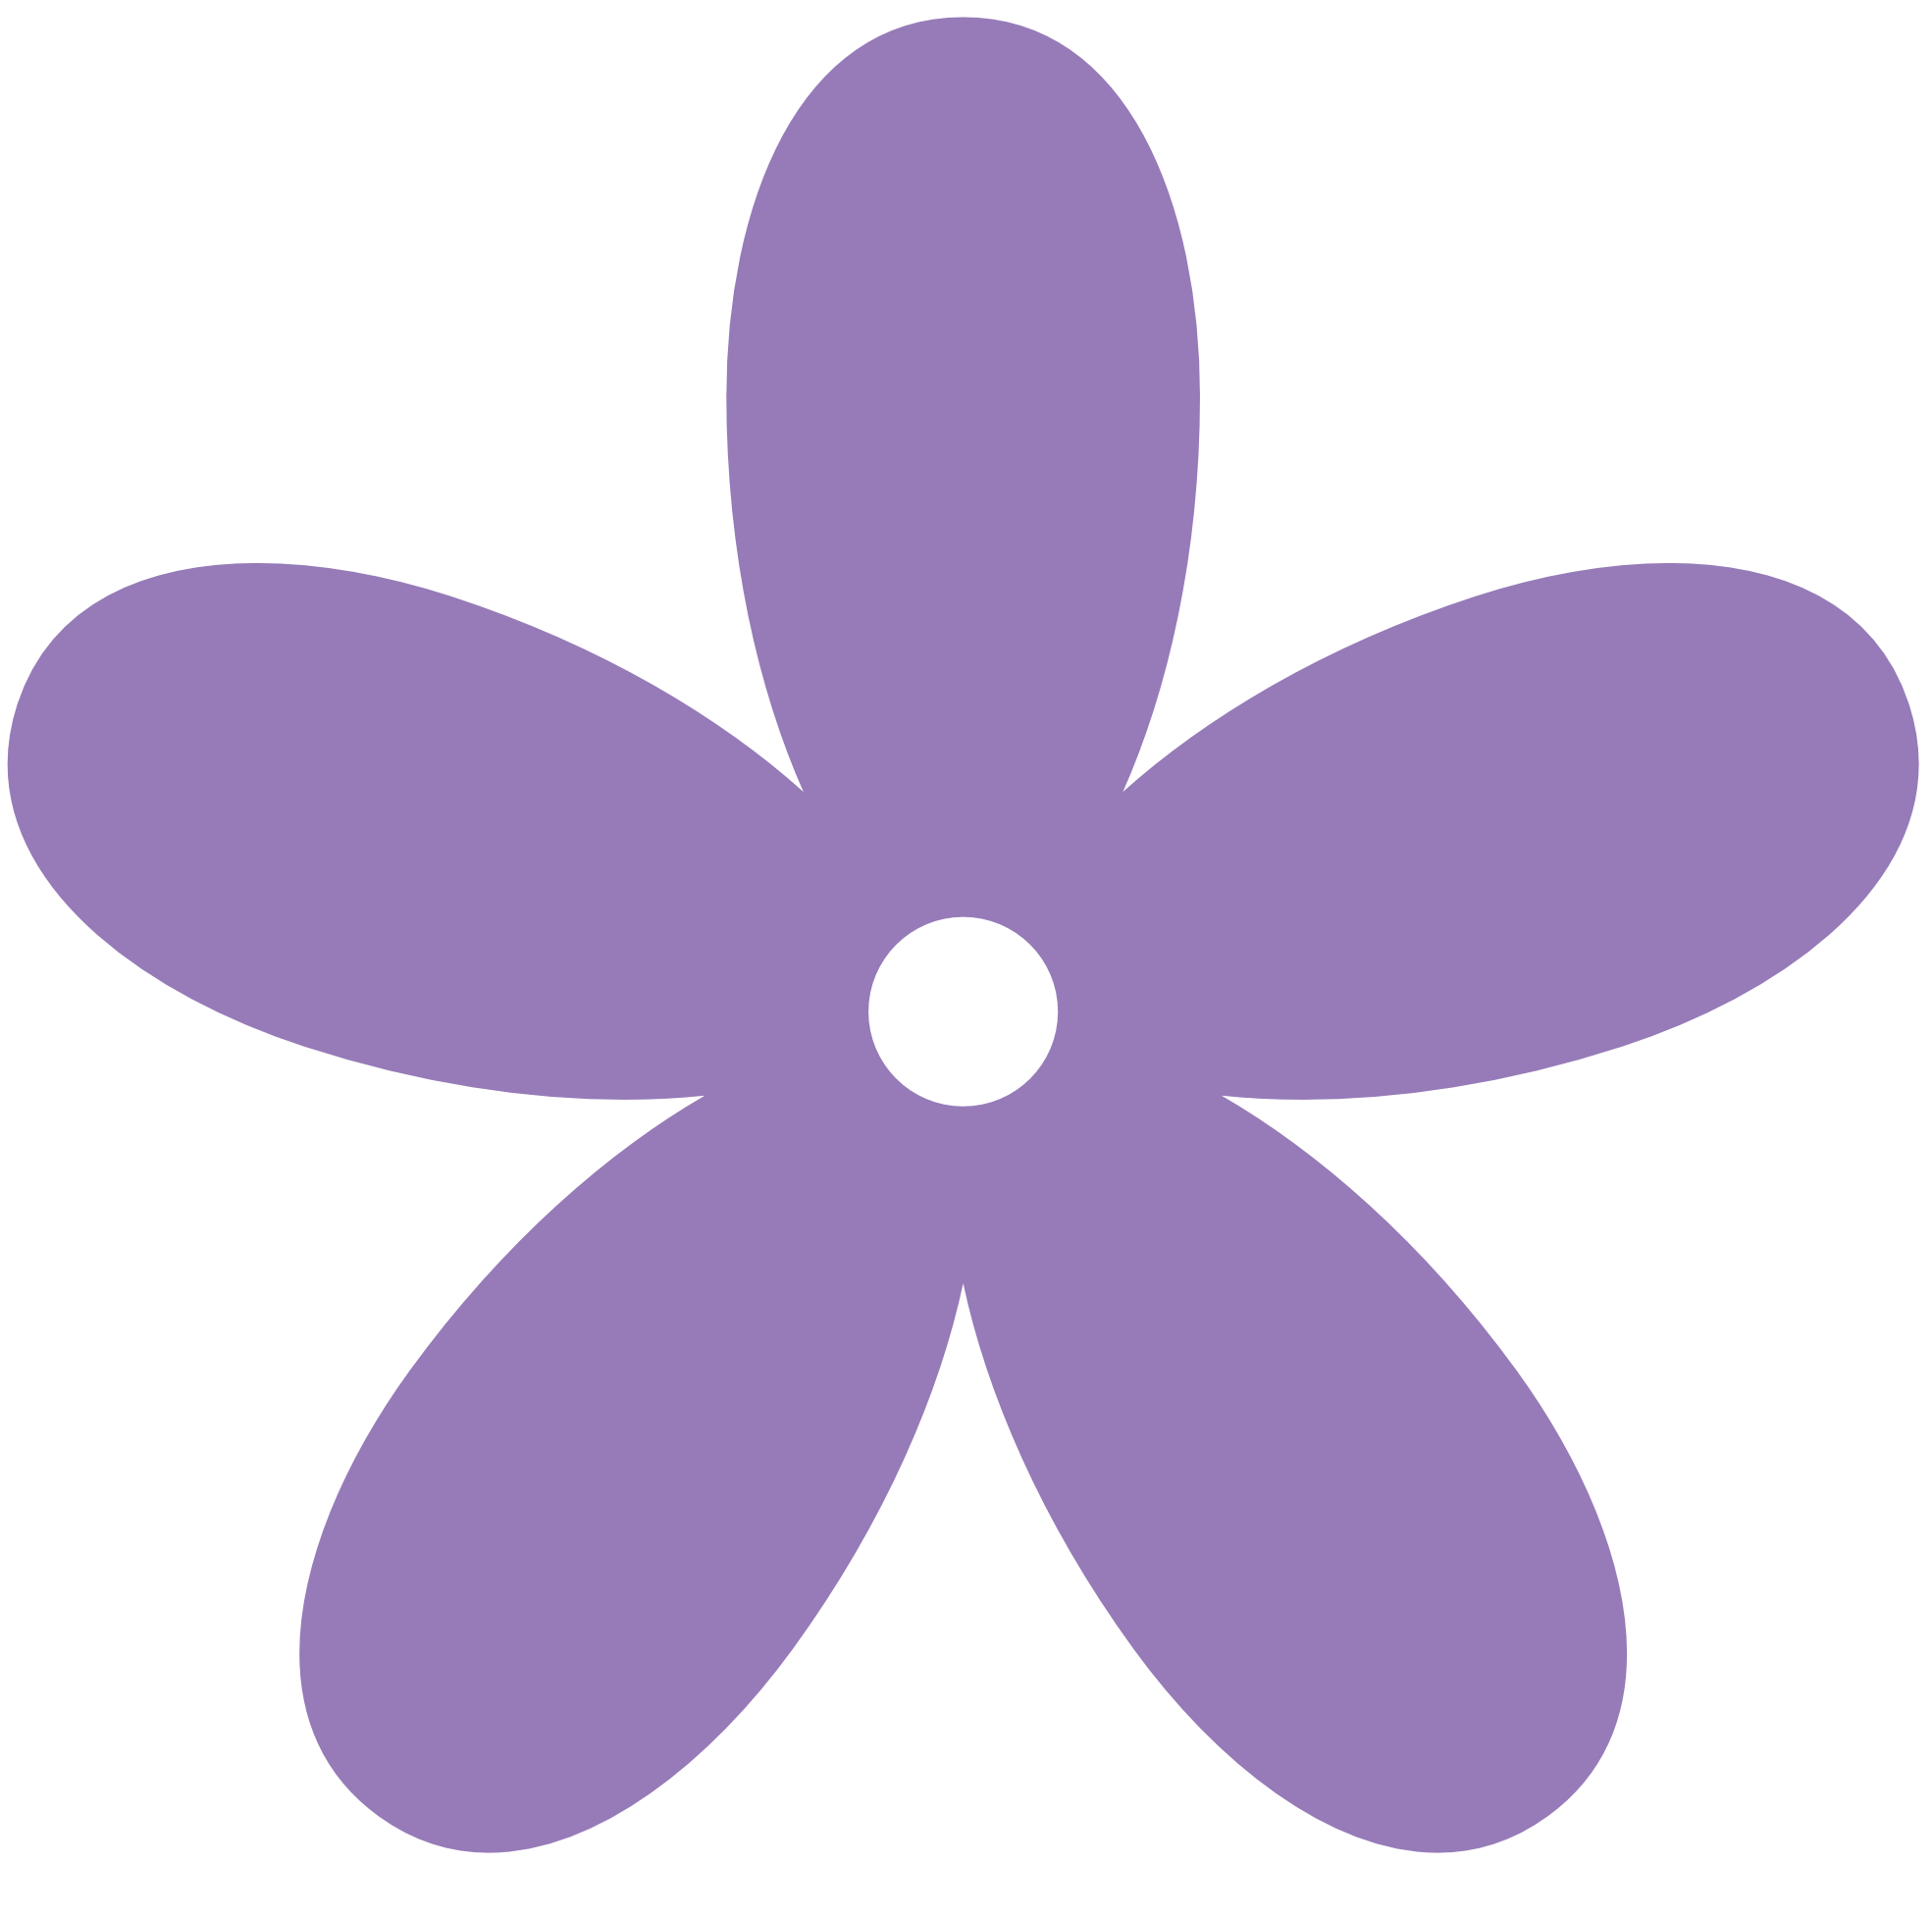 Lavender butterfly png. Flower clipart at getdrawings